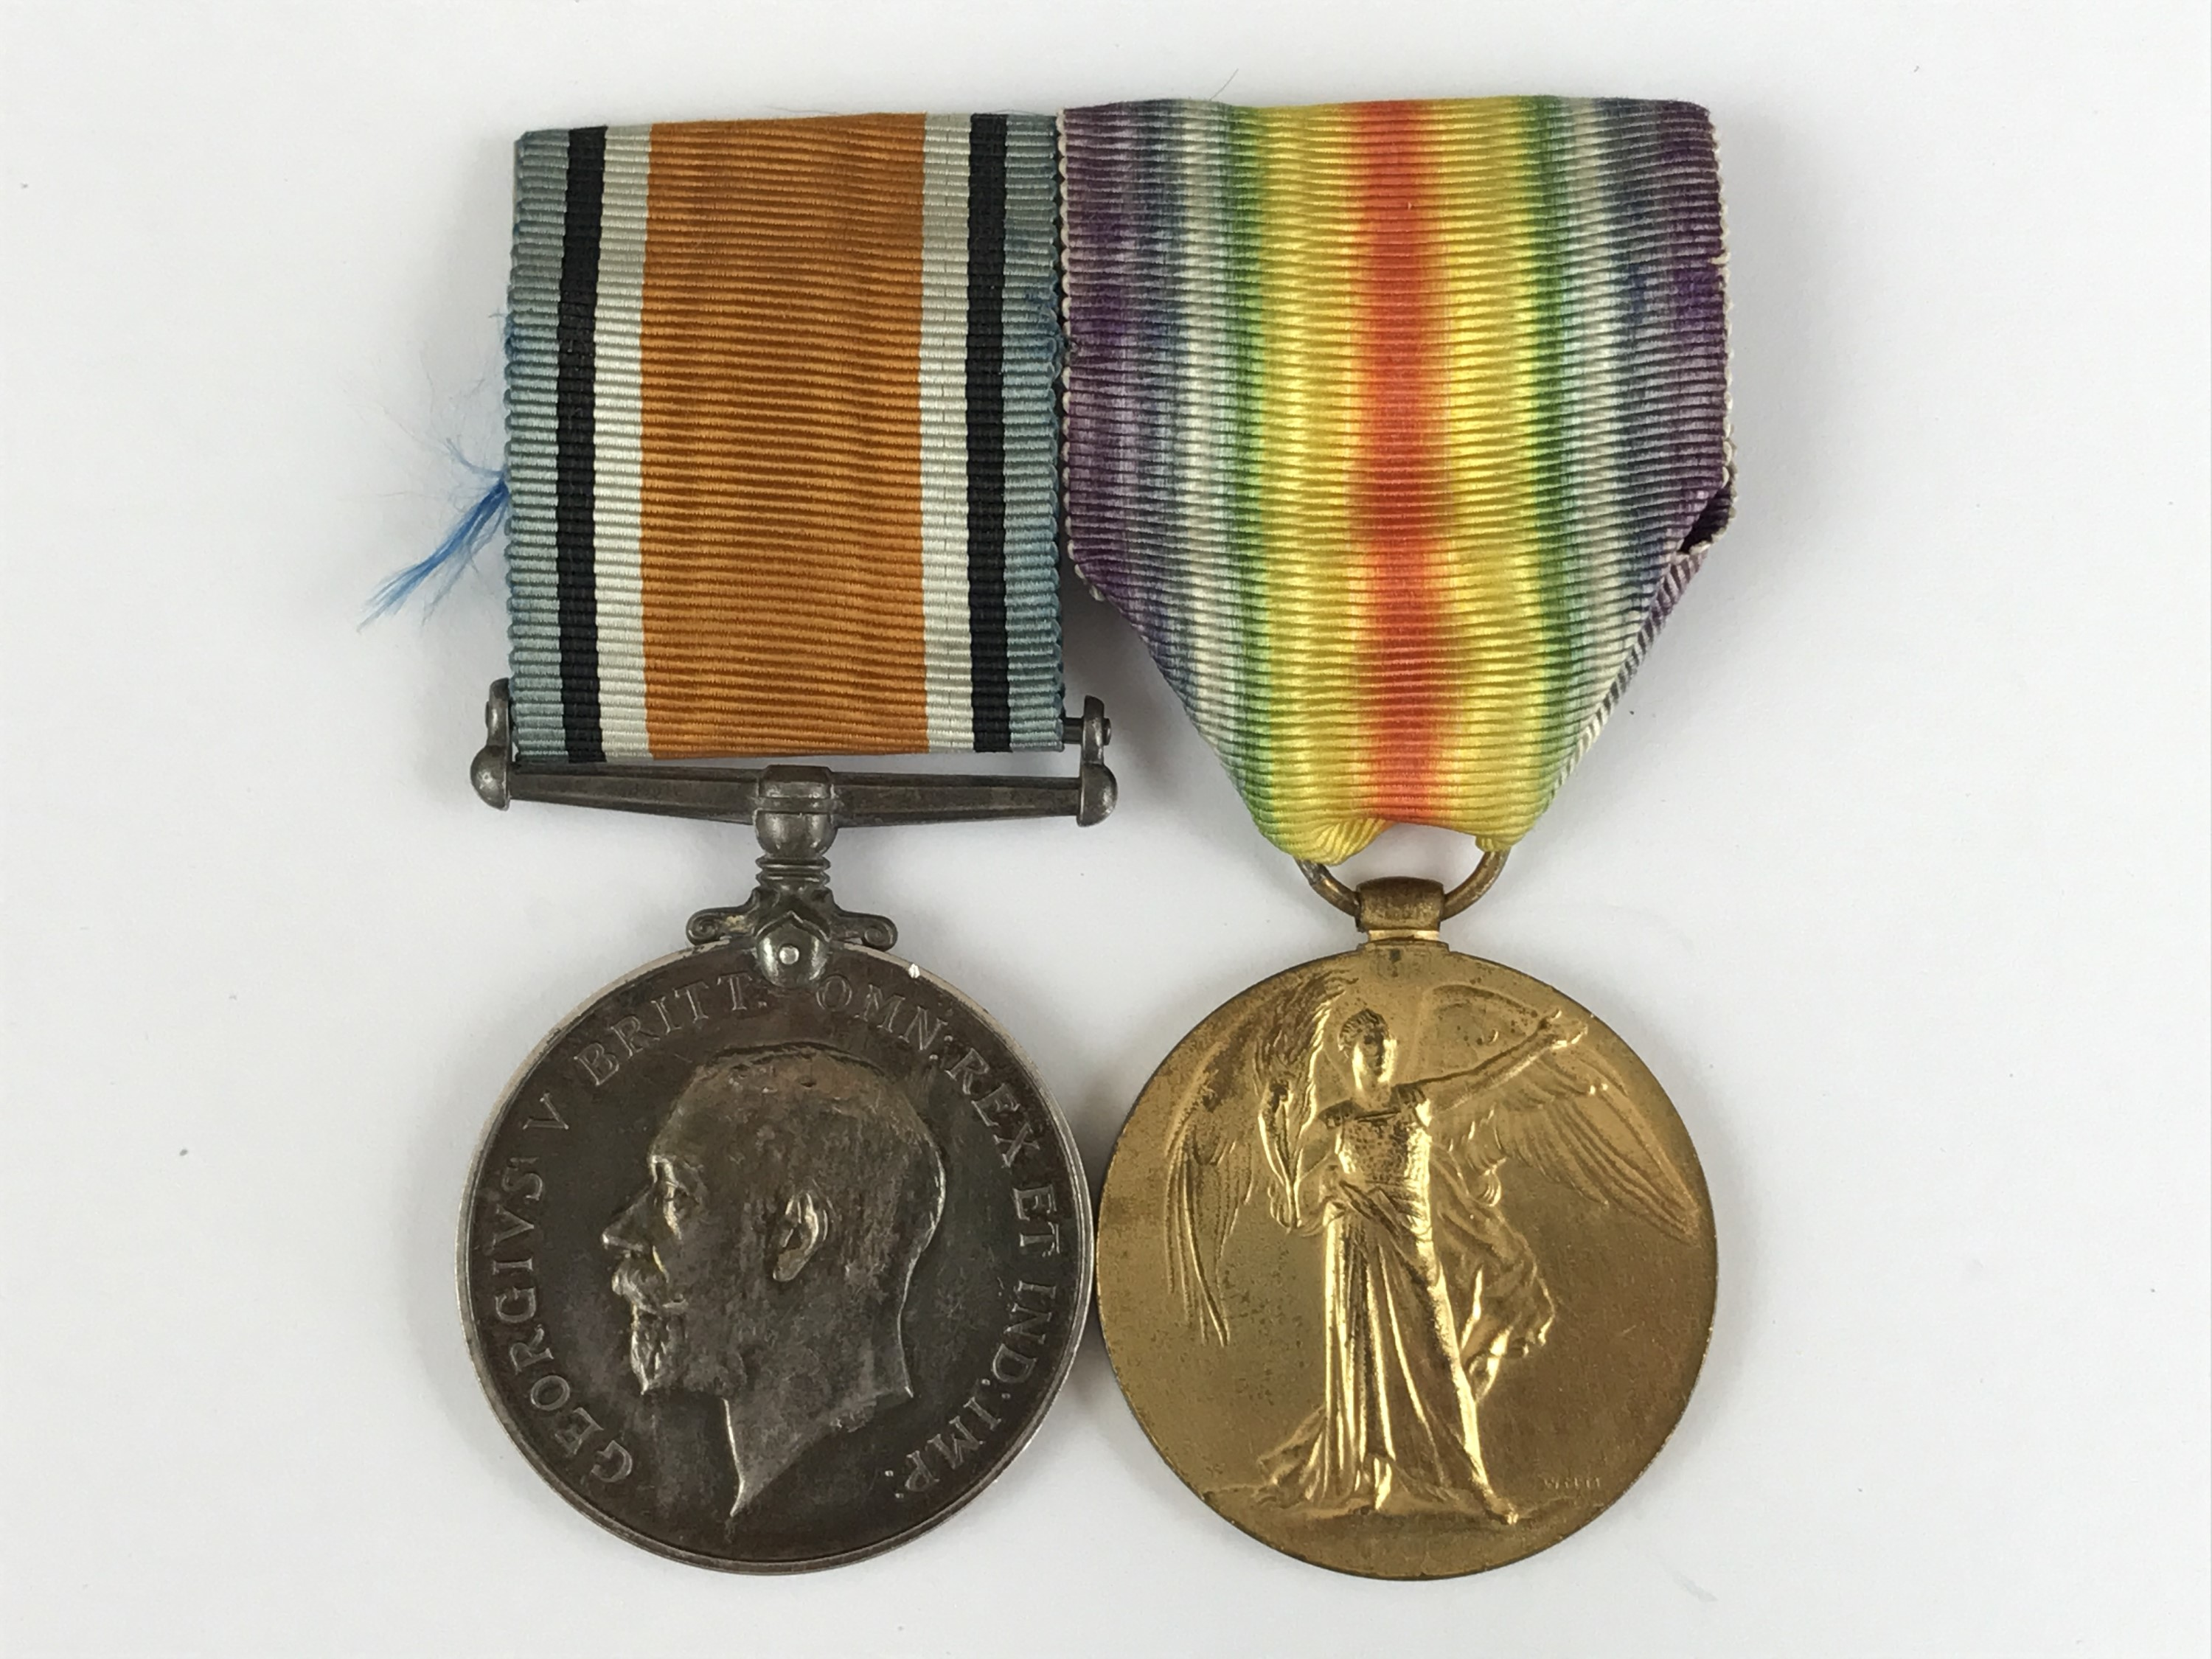 Lot 23 - British War and Victory medals to 41172 Pte D D Macfarlane, Royal Scots